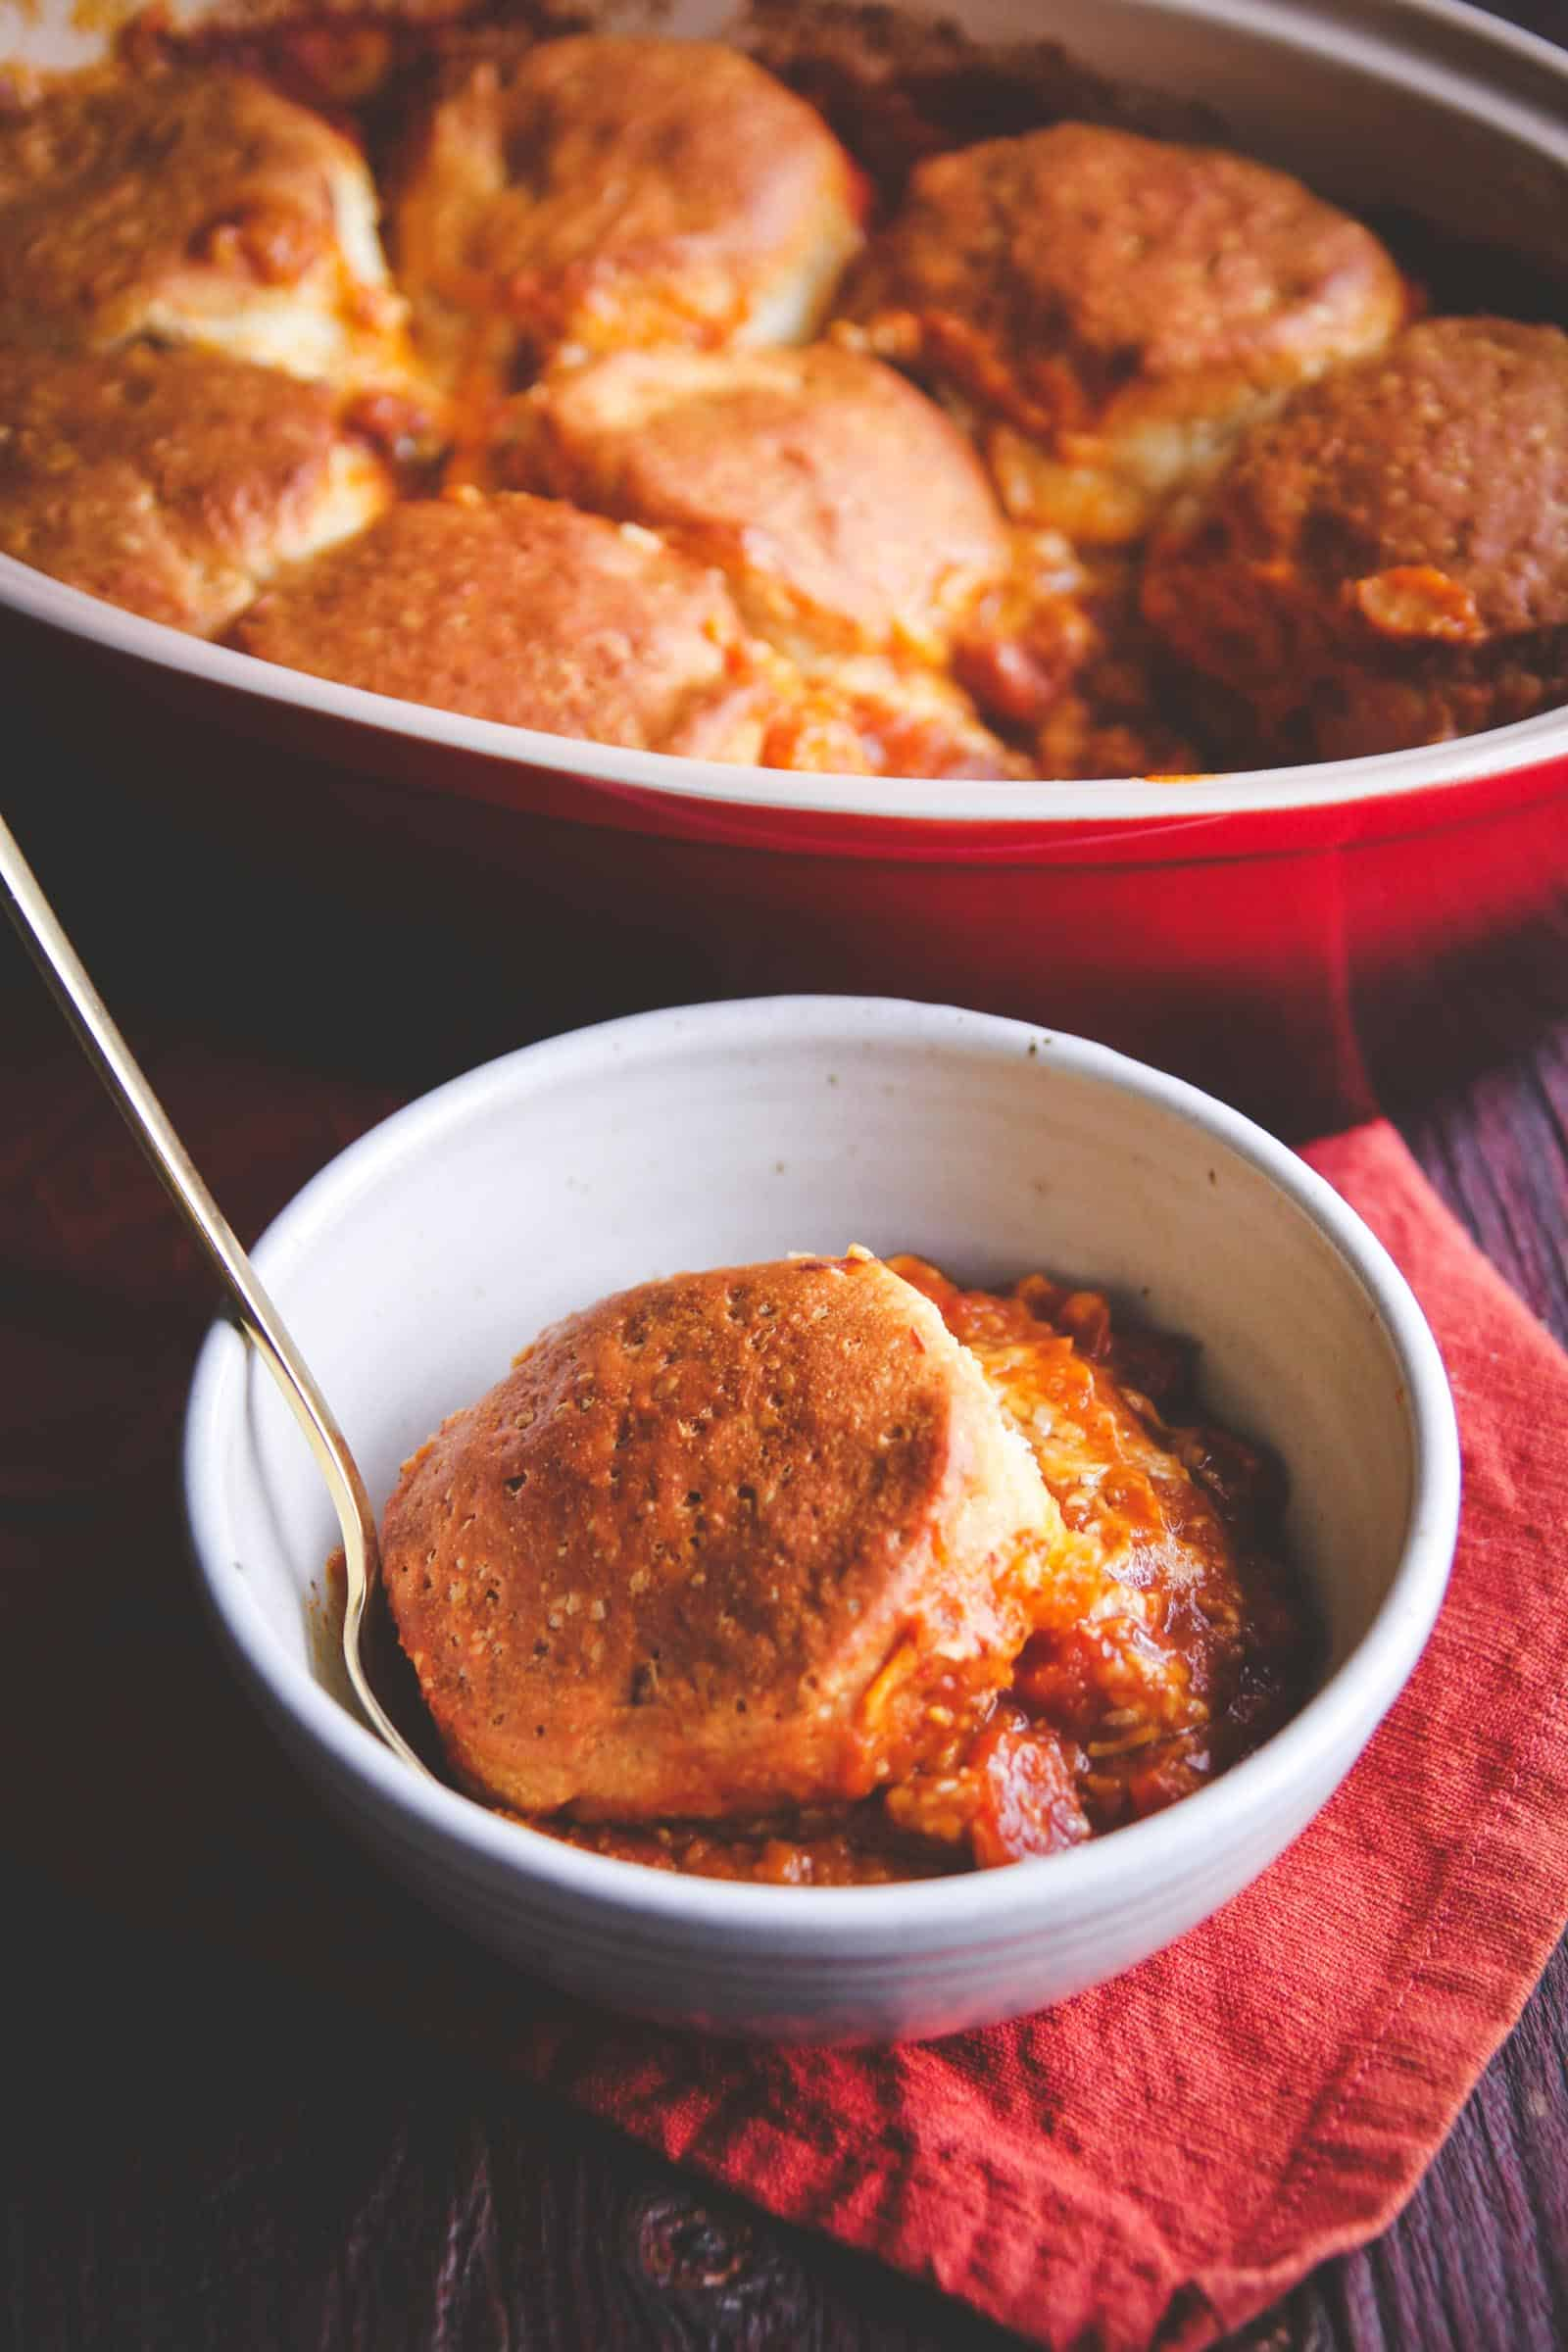 5 ingredient pumpkin chili cheese biscuit bake recipe. Easy fall dinner idea from @sweetphi